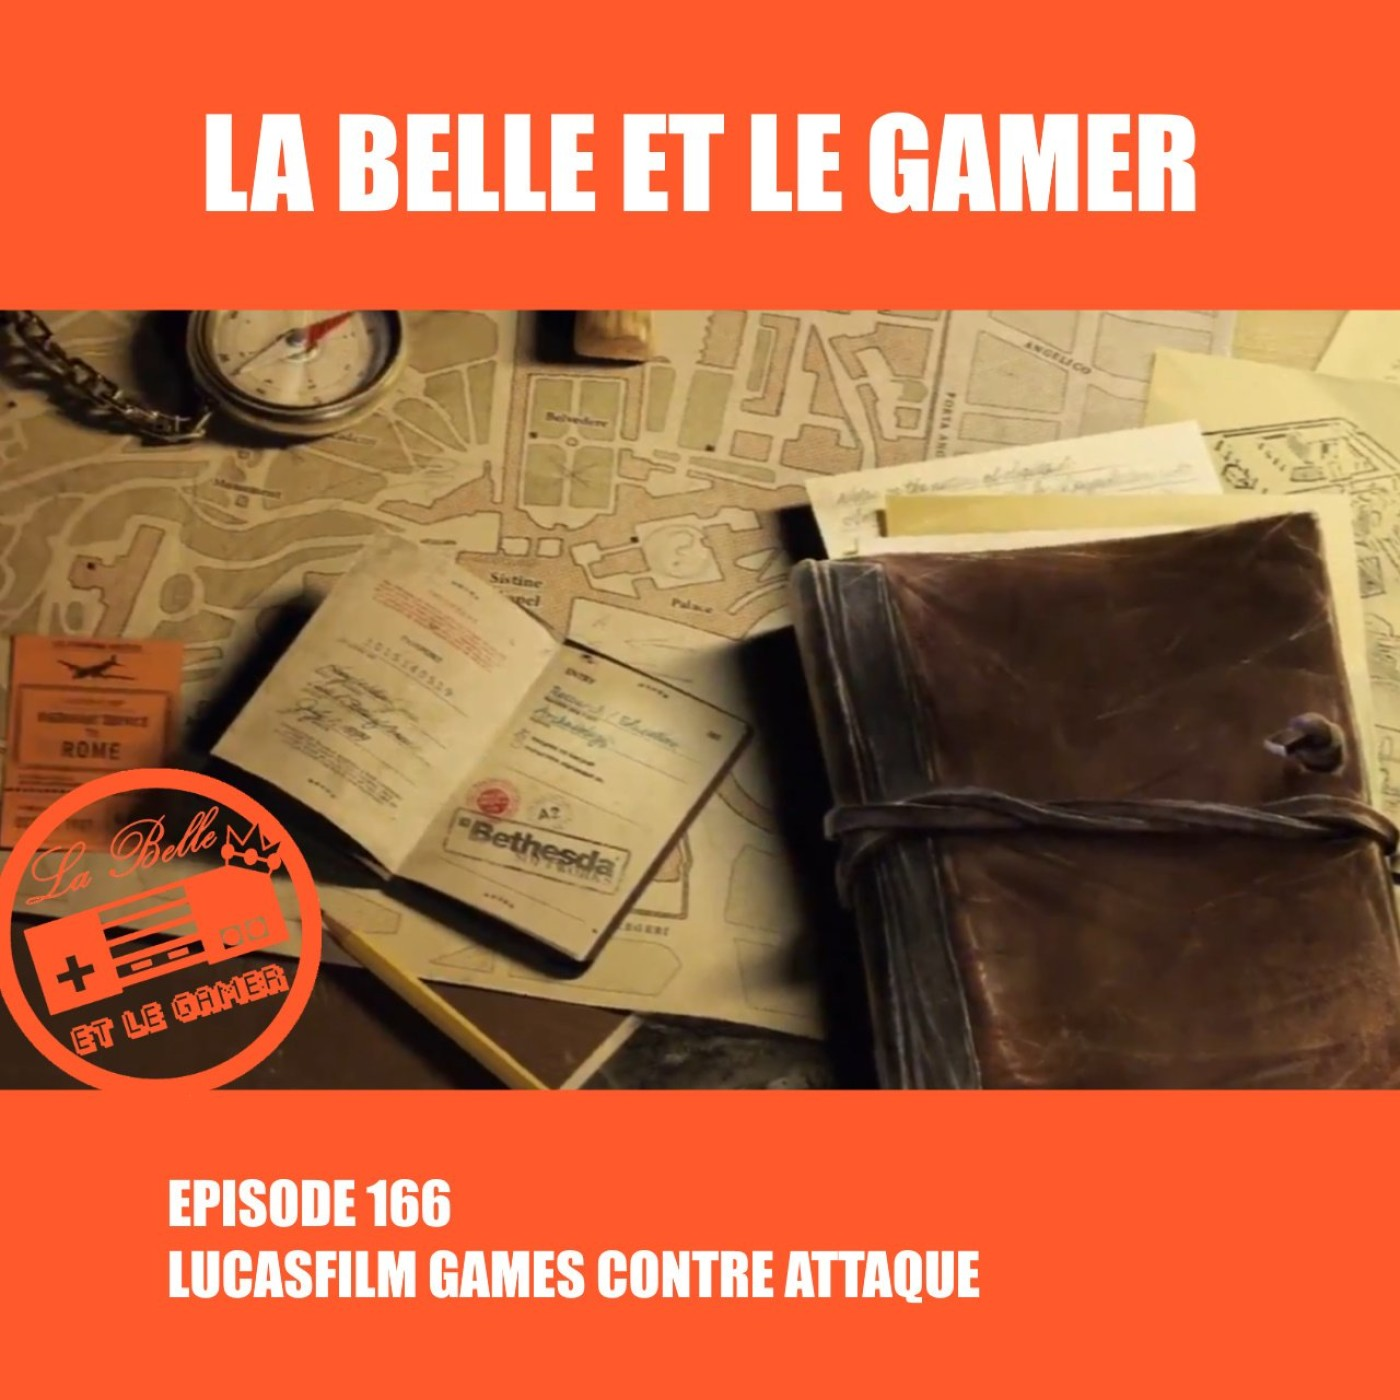 Episode 166: Lucasfilm Games Contre Attaque